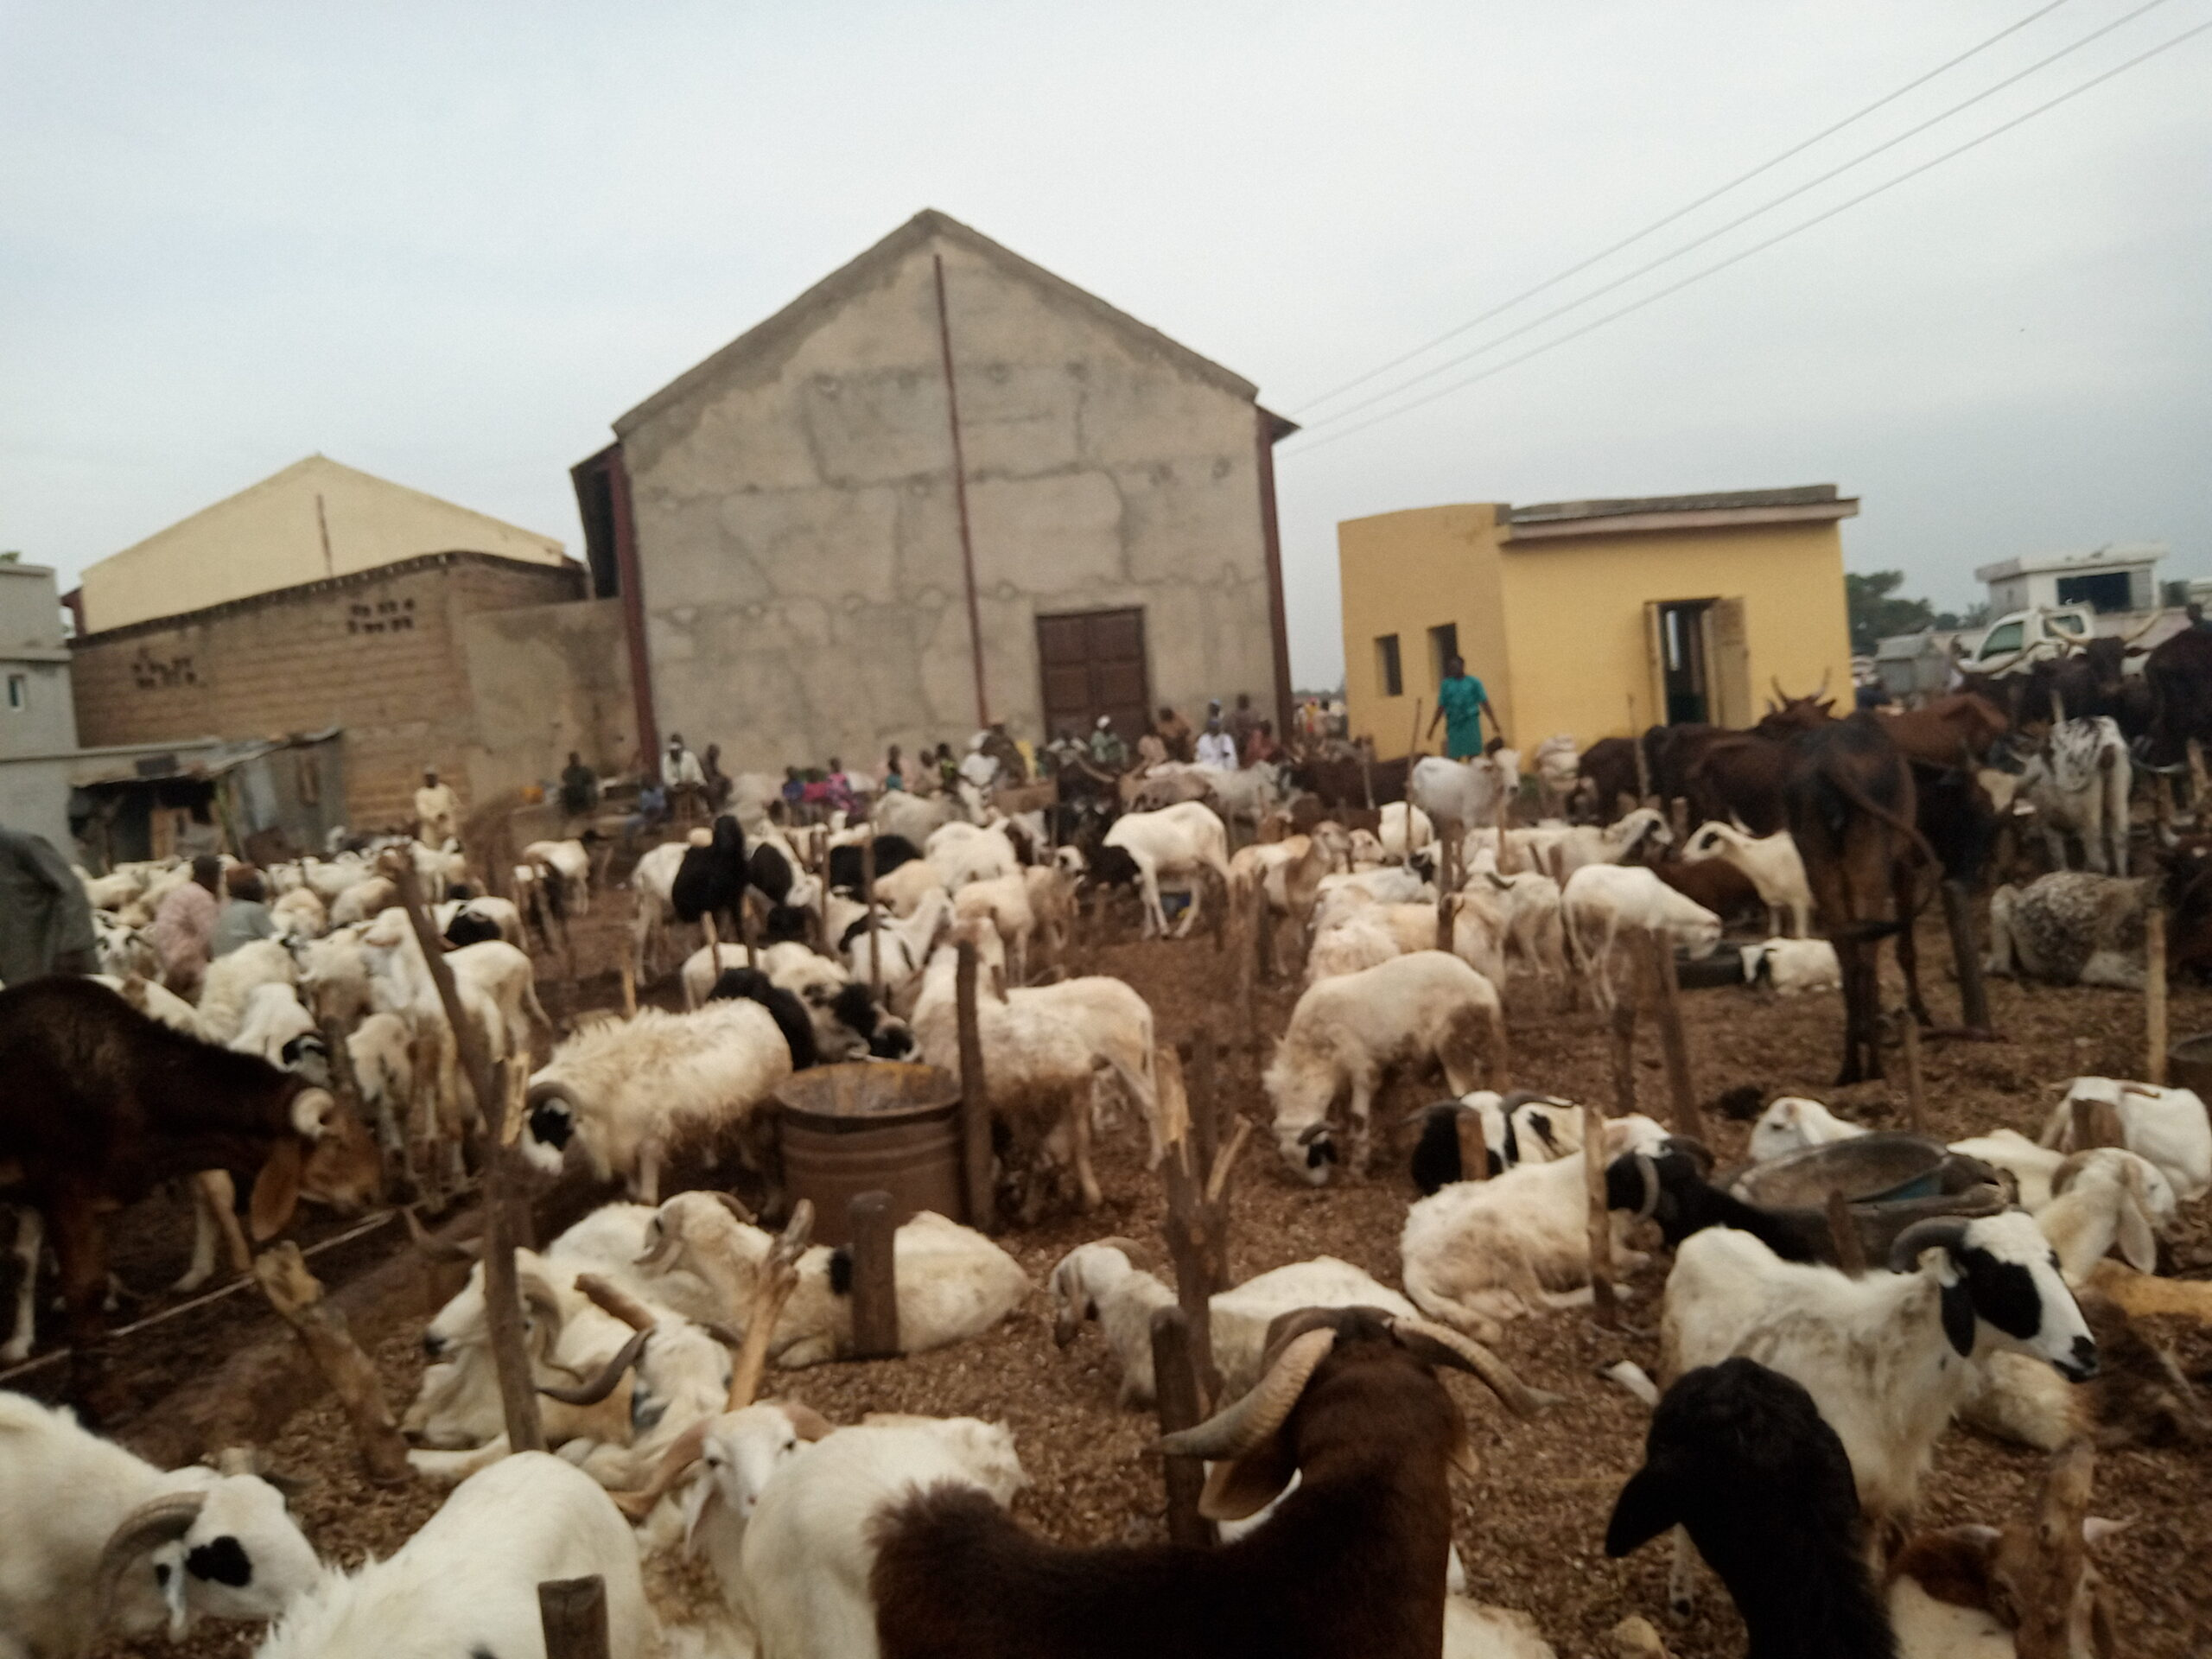 IMG 20200727 164436 8 0ddb580971e79843a274683add05ac24 scaled - Sallah: Cost of food items, livestock drop